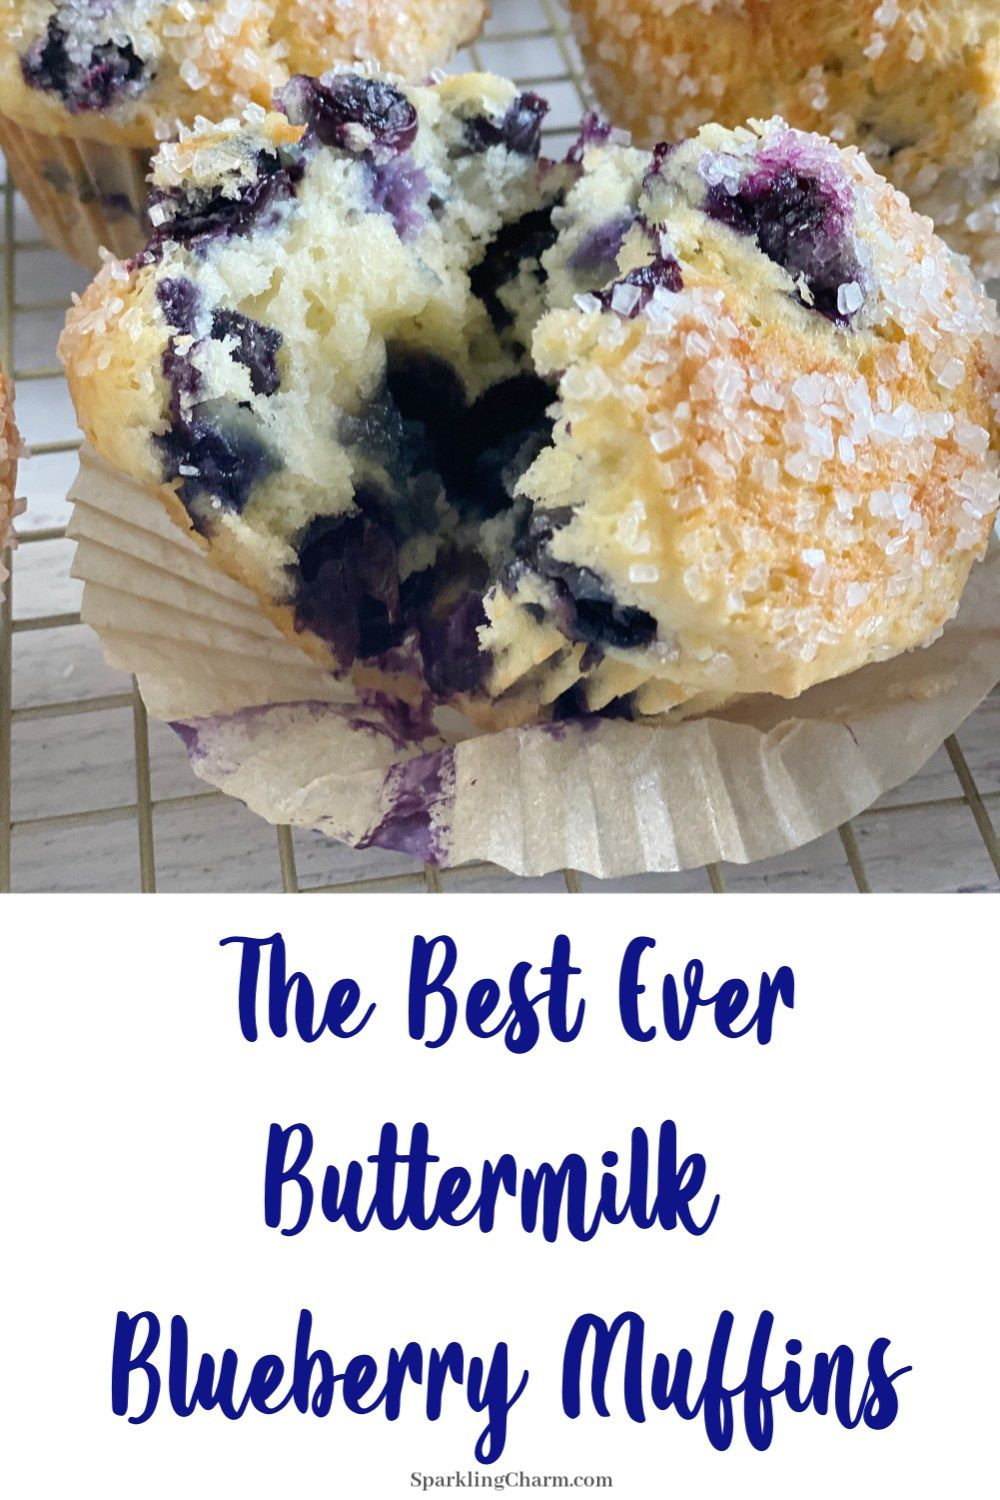 The Best Ever Homemade Buttermilk Blueberry Muffins Sparkling Charm Entertaining Lifestyle Tips Recipes Crafts Recipe In 2020 Buttermilk Blueberry Muffins Blue Berry Muffins Homemade Buttermilk